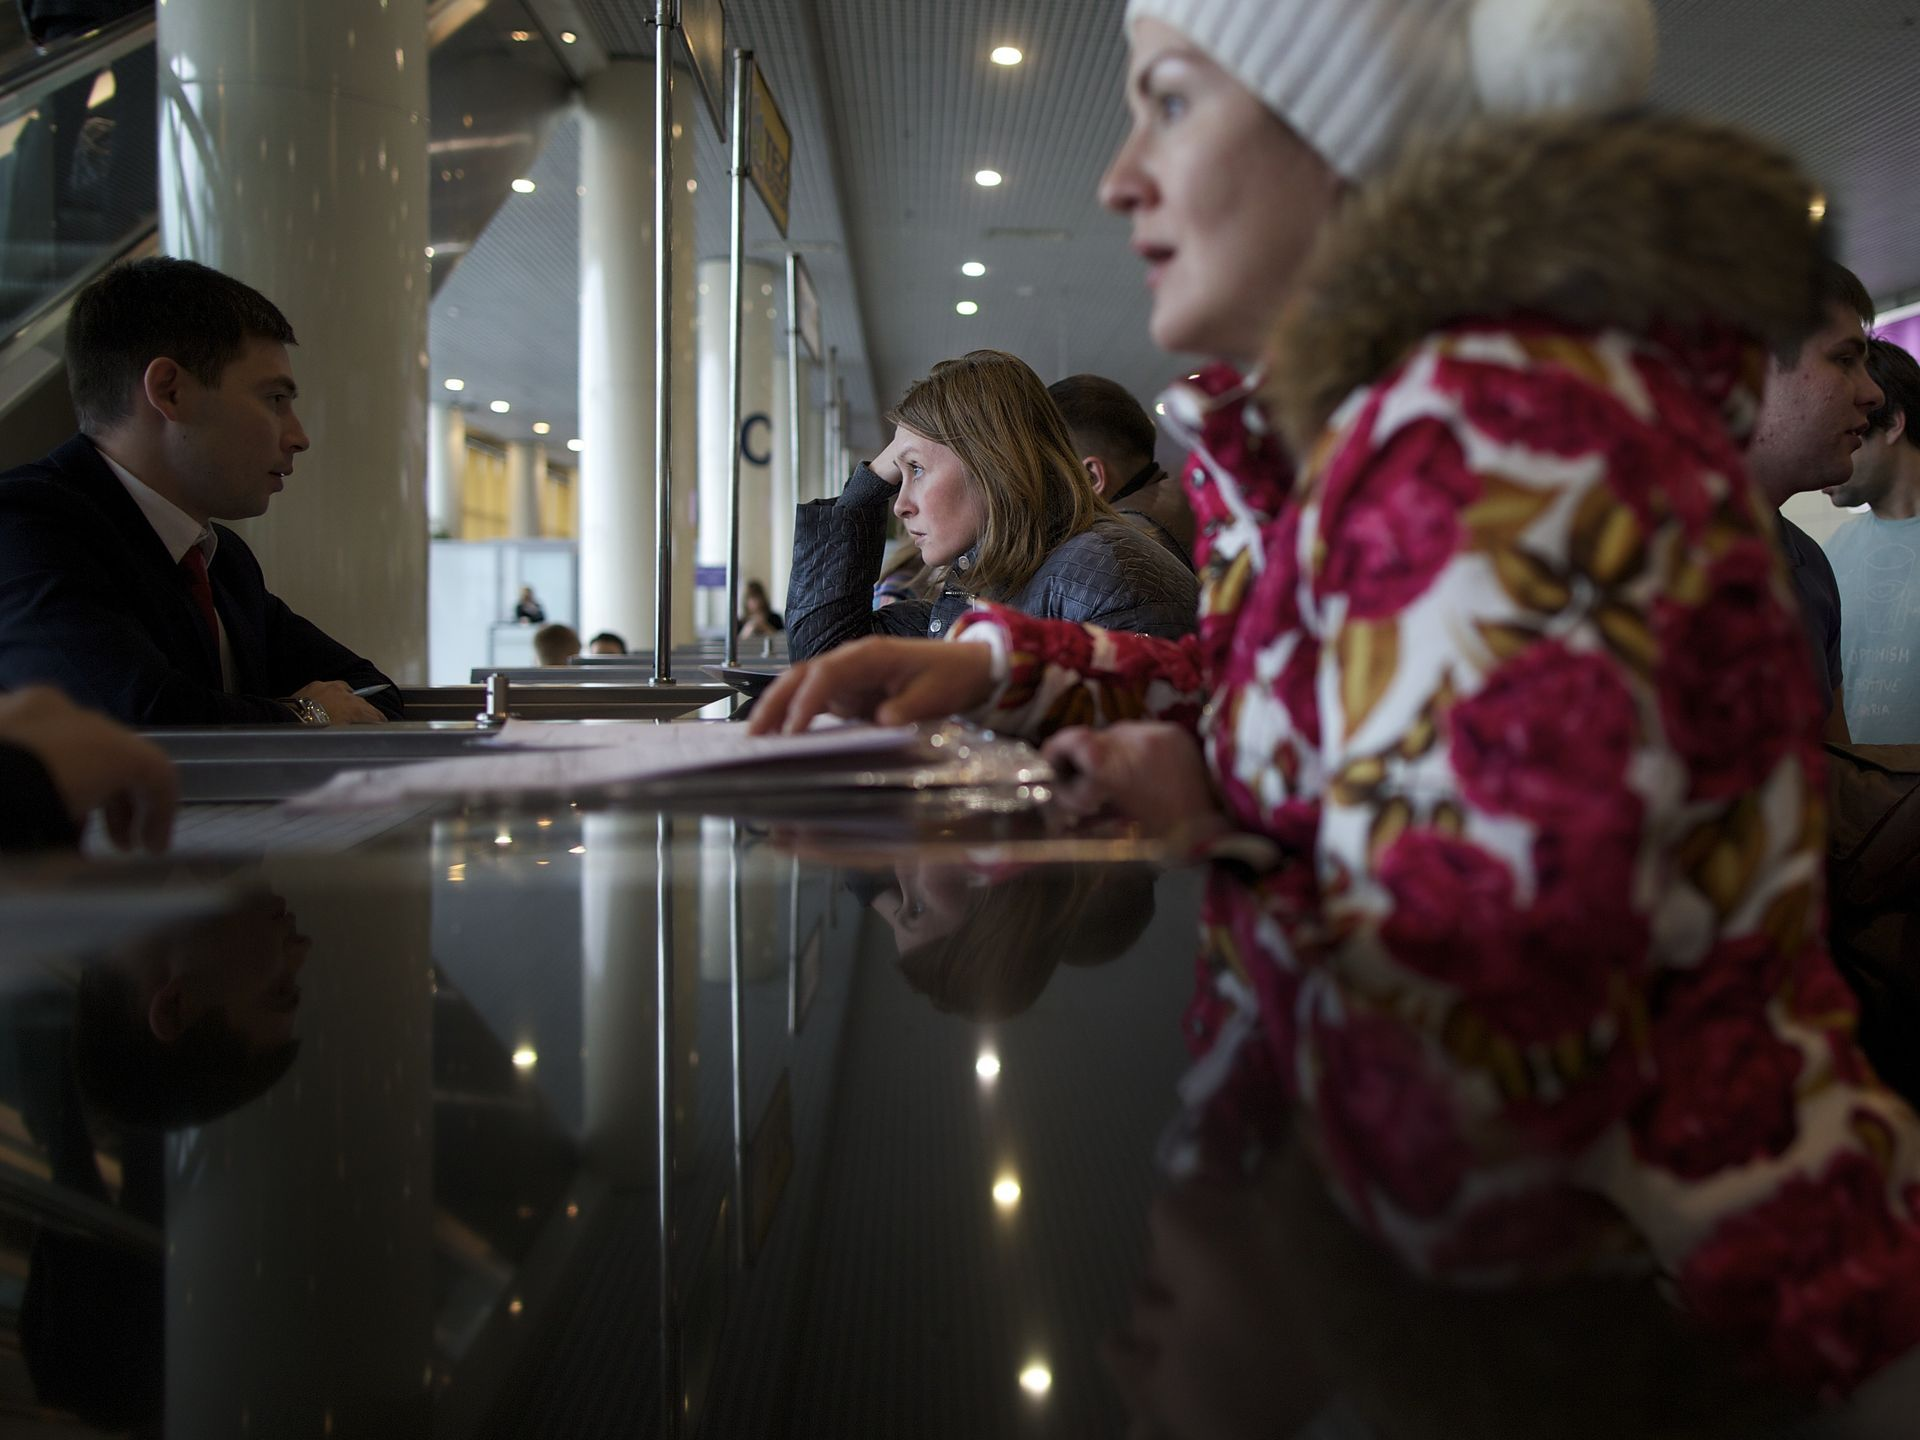 Stranded tourists line up at a travel agency desk in Domodedovo Airport in Moscow as their flight to Egypt is cancelled. Russia has suspended all flights to Egypt until aviation security procedures improve.  Alexander Zemlianichenko, AP